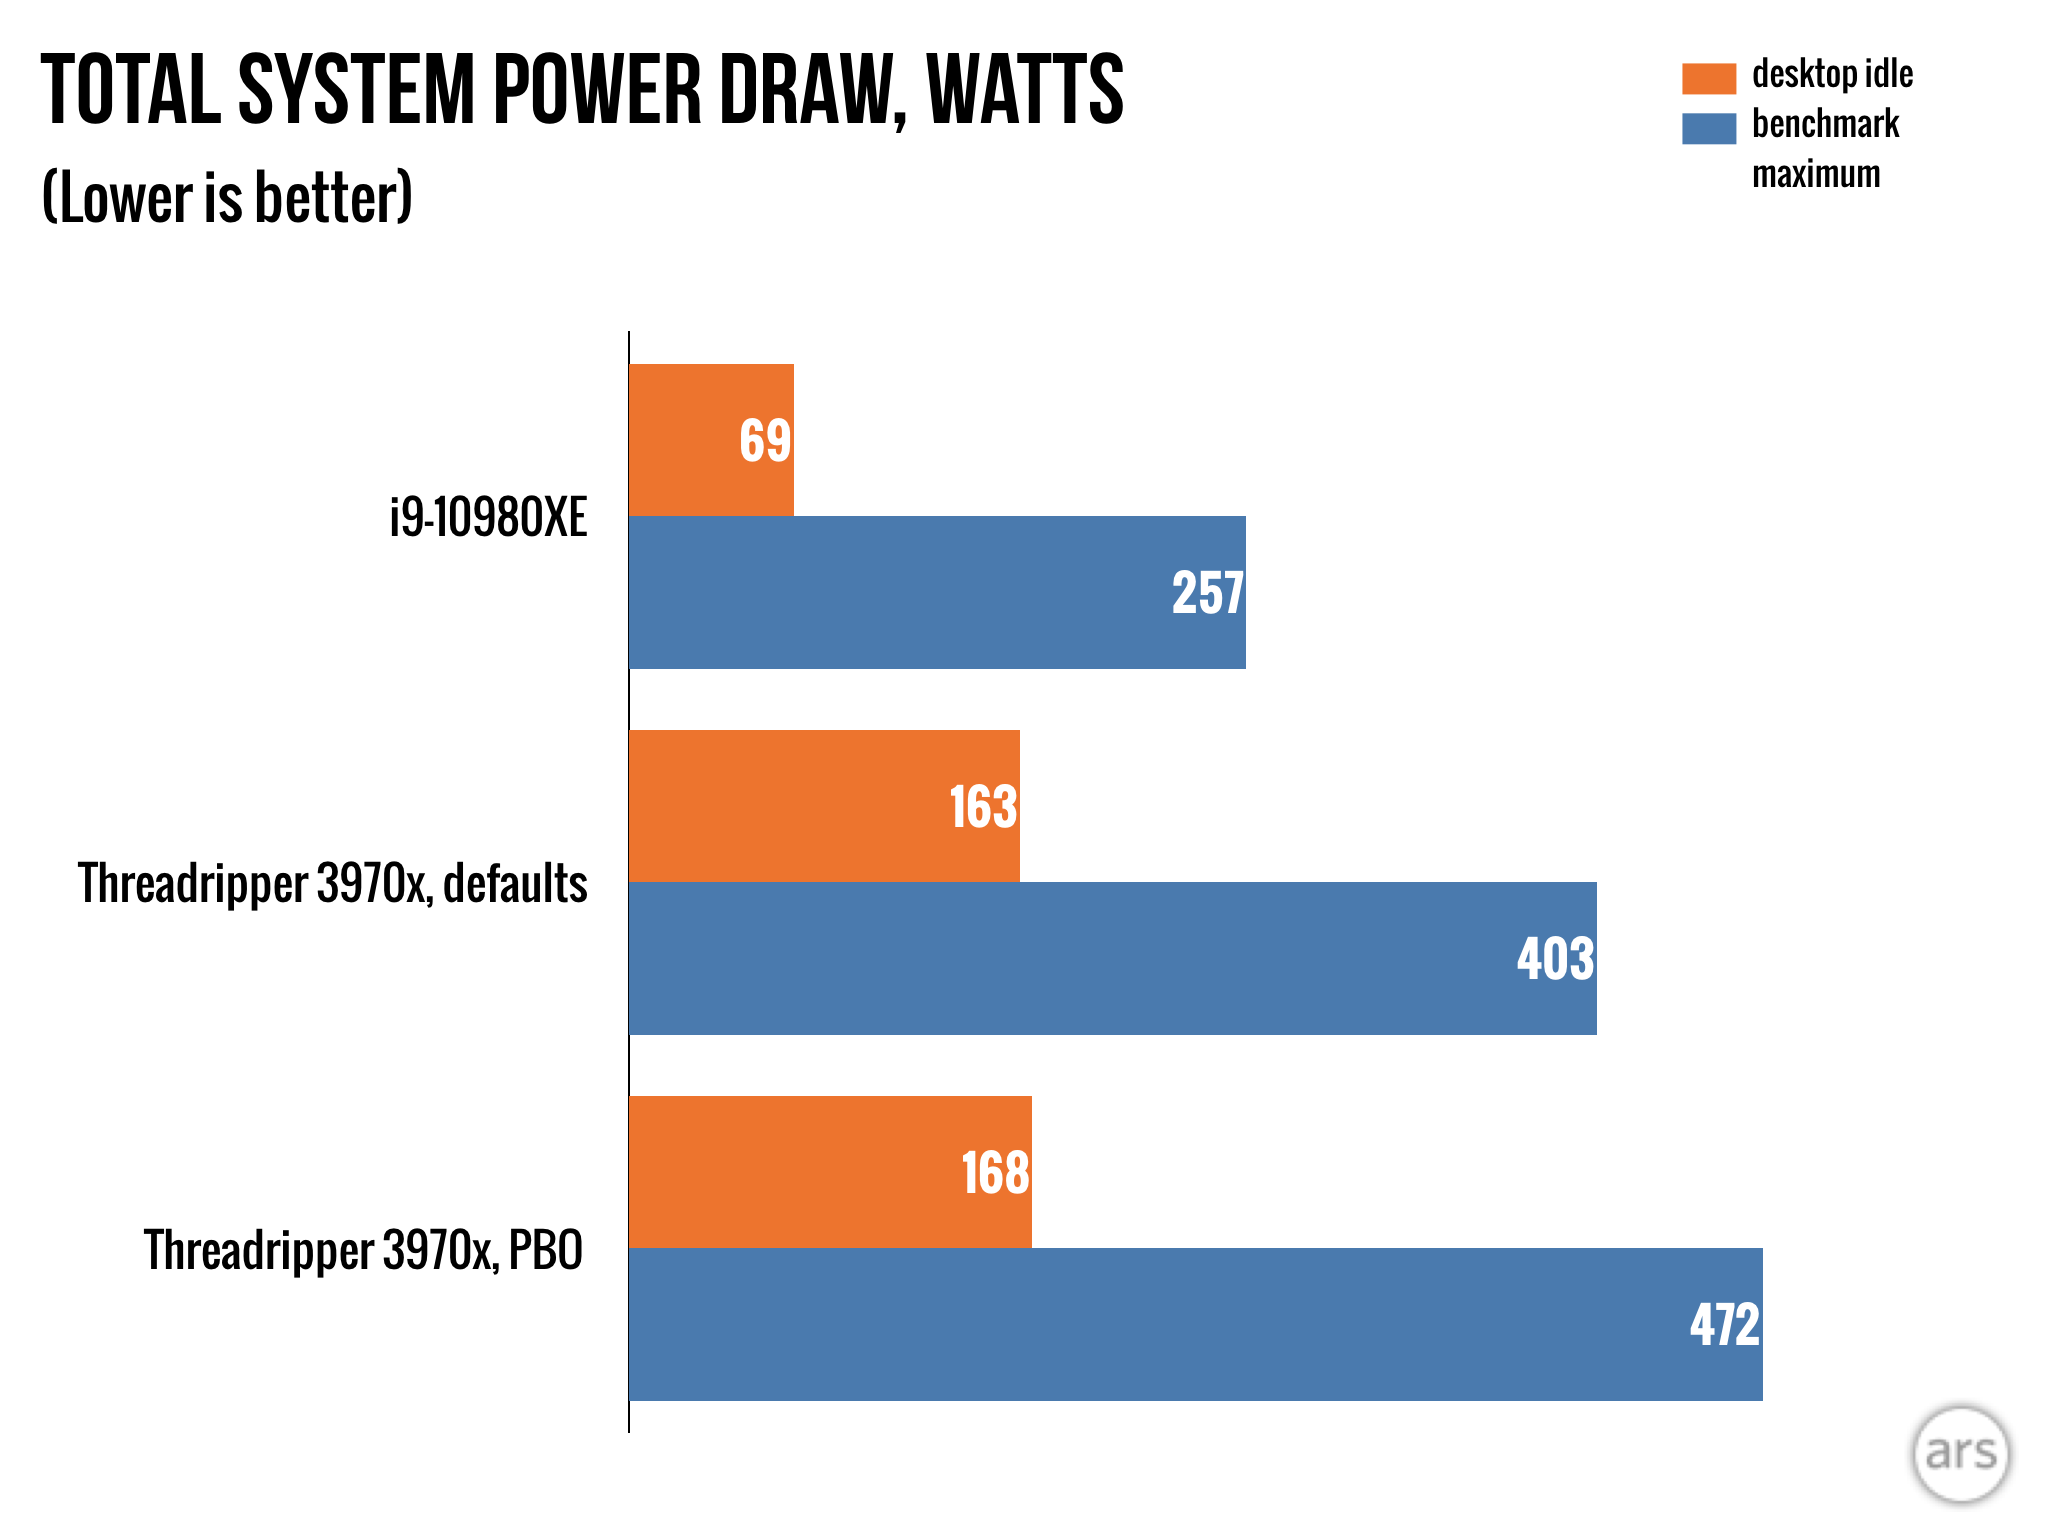 Our i9-10980XE system desktop idled at 69W and drew 257W at the wall under full CPU load.